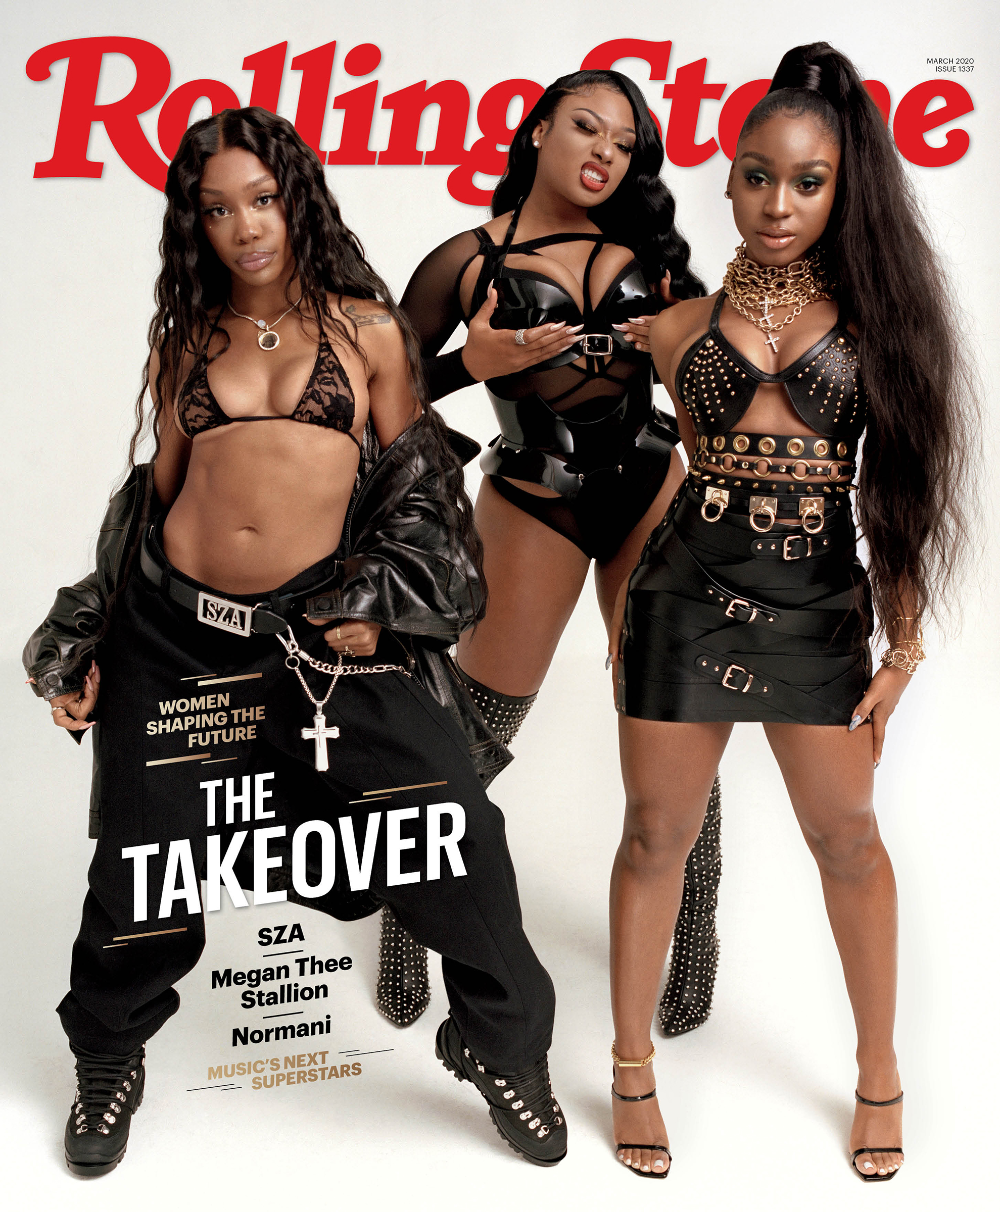 Sza Megan Thee Stallion Normani On Cover Of March Rolling Stone Rolling Stone In 2020 Black Girl Aesthetic Black Magazine Women